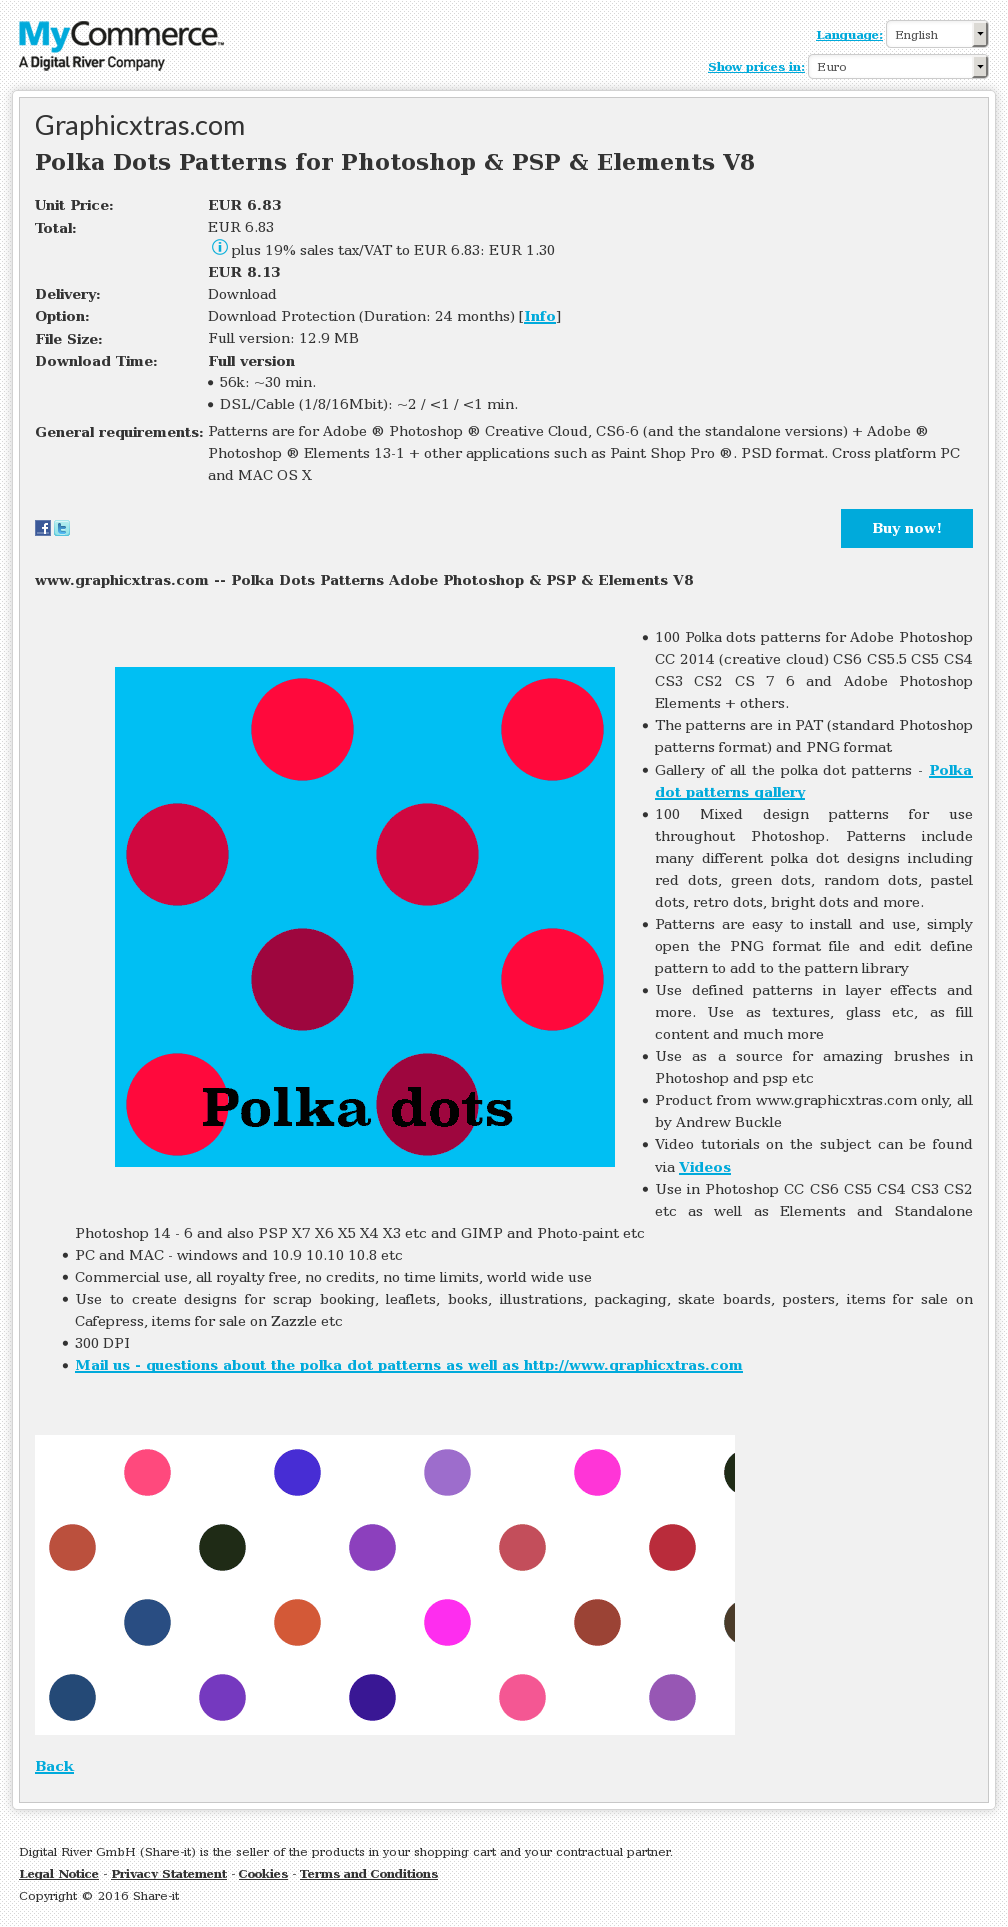 Polka Dots Patterns Photoshop Psp Elements Howto